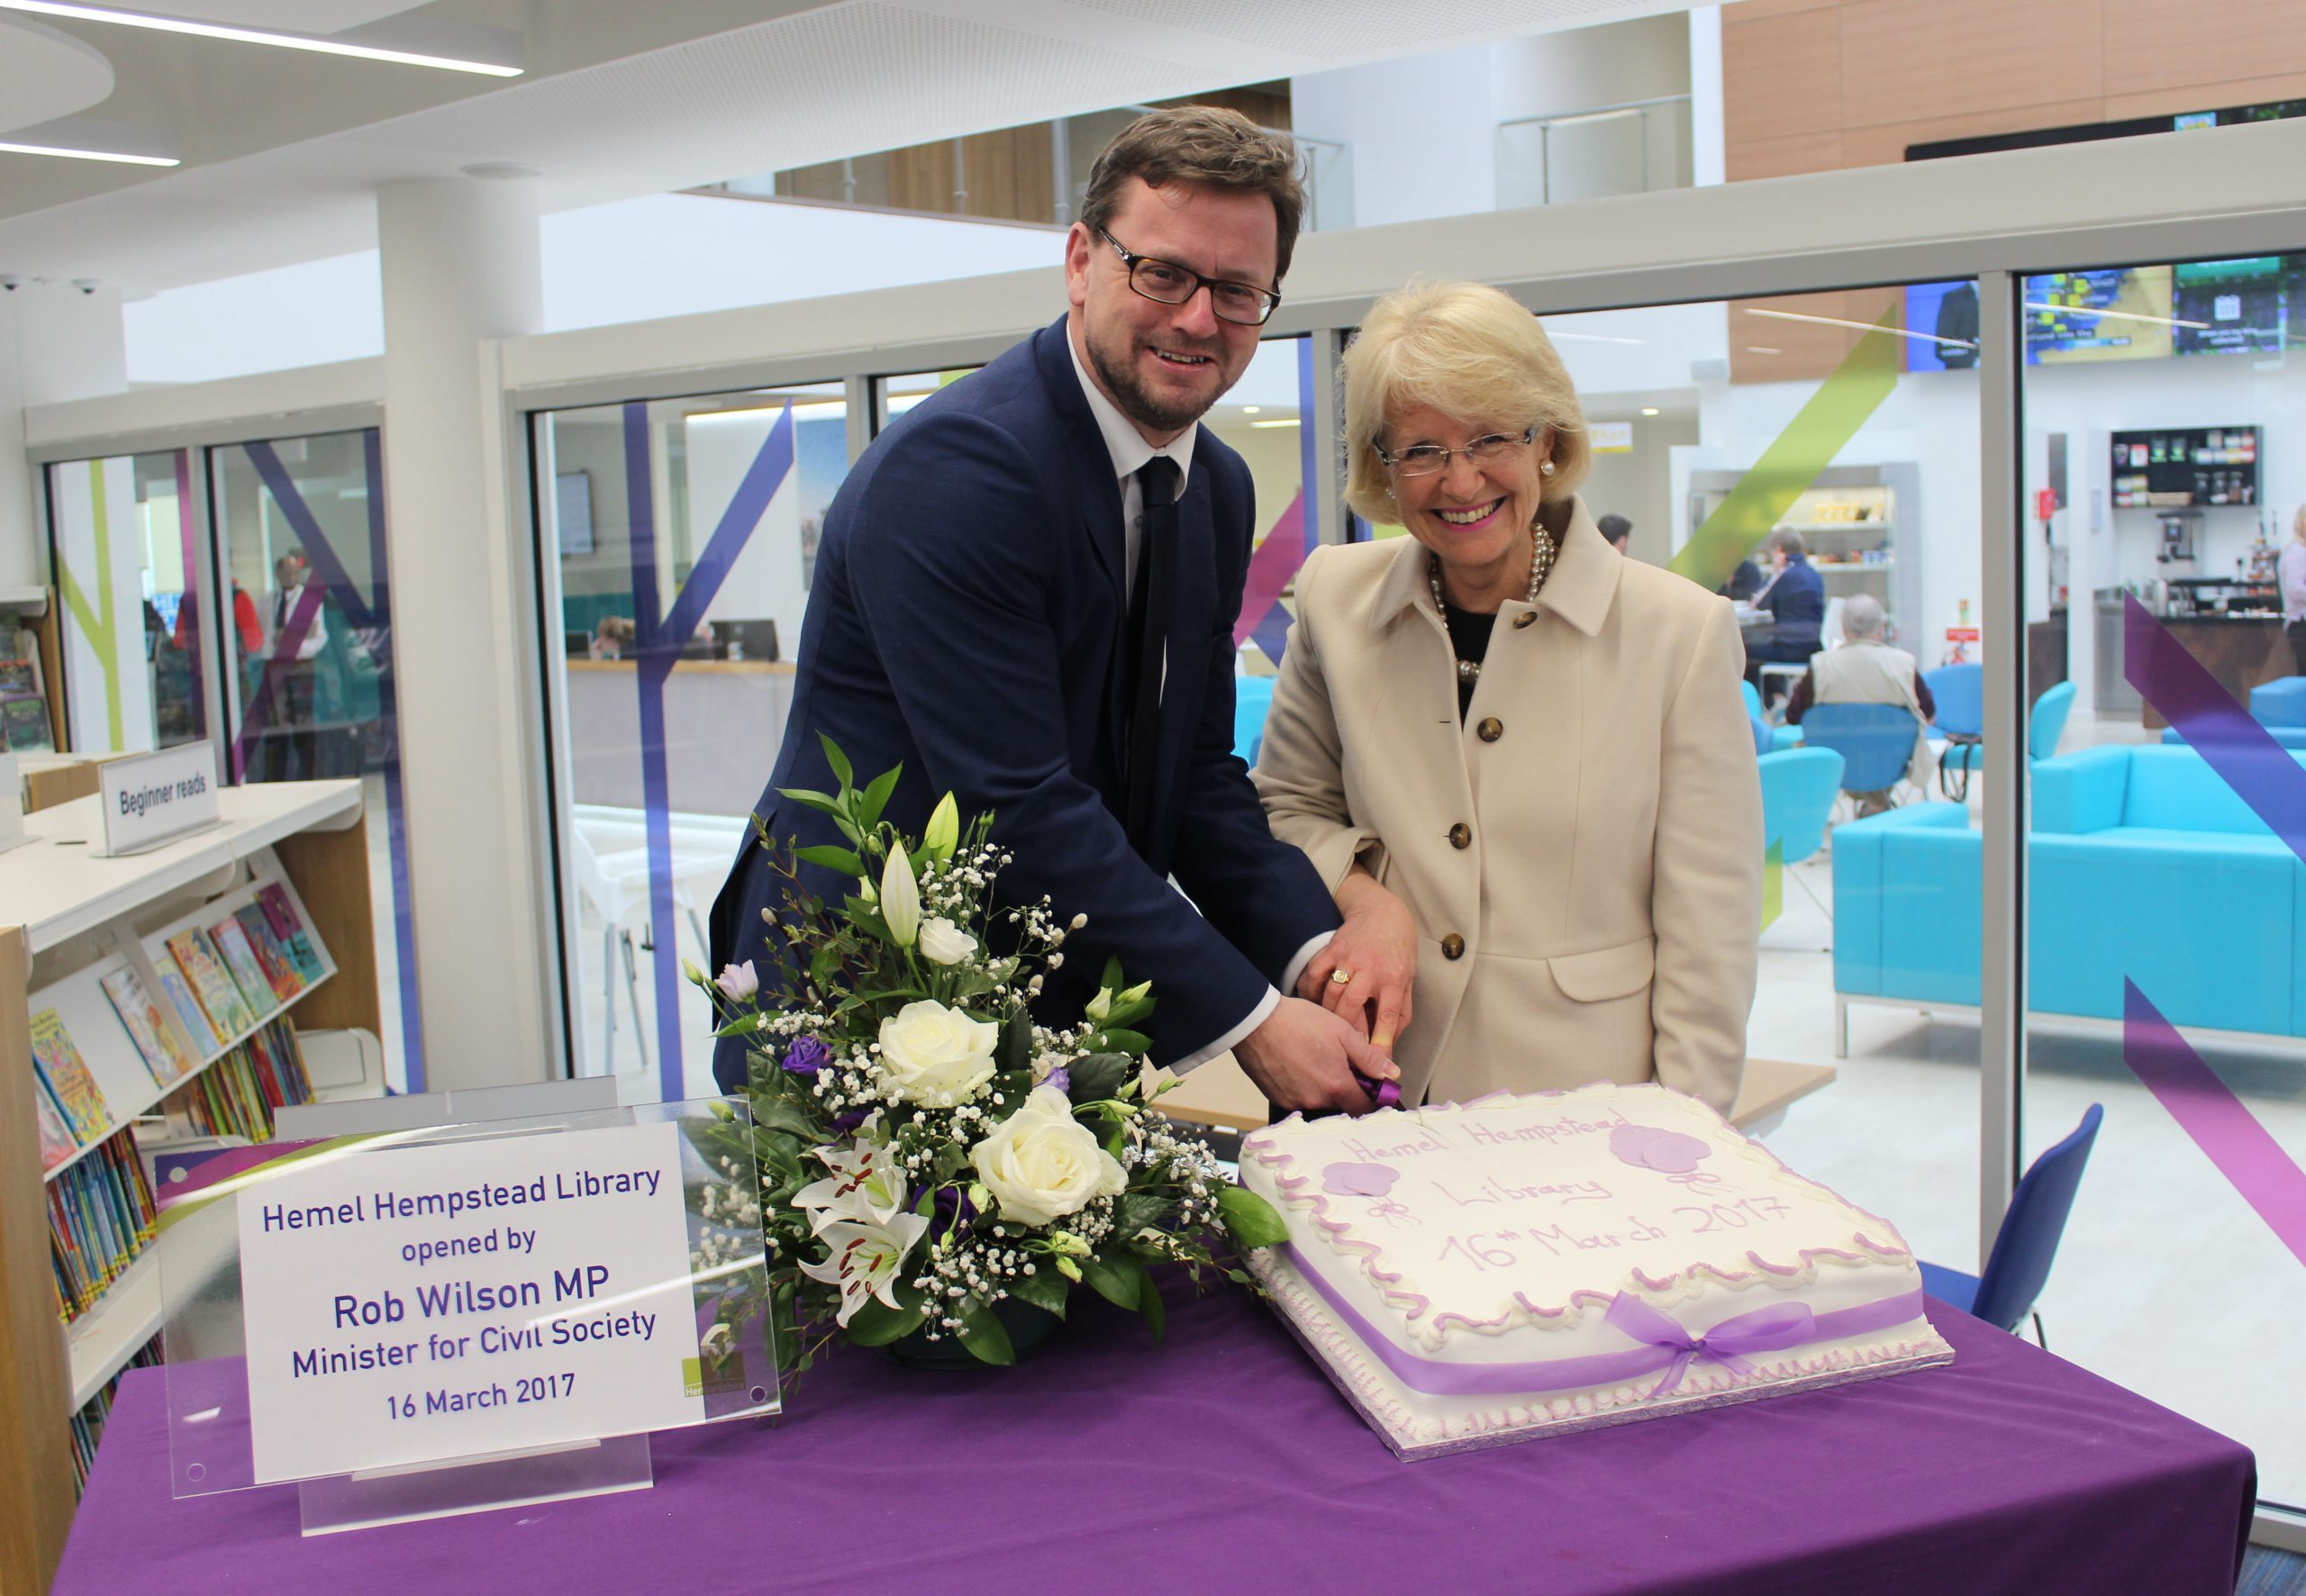 Minister for Libraries, Rob Wilson opens two state of the art libraries in Hertfordshire